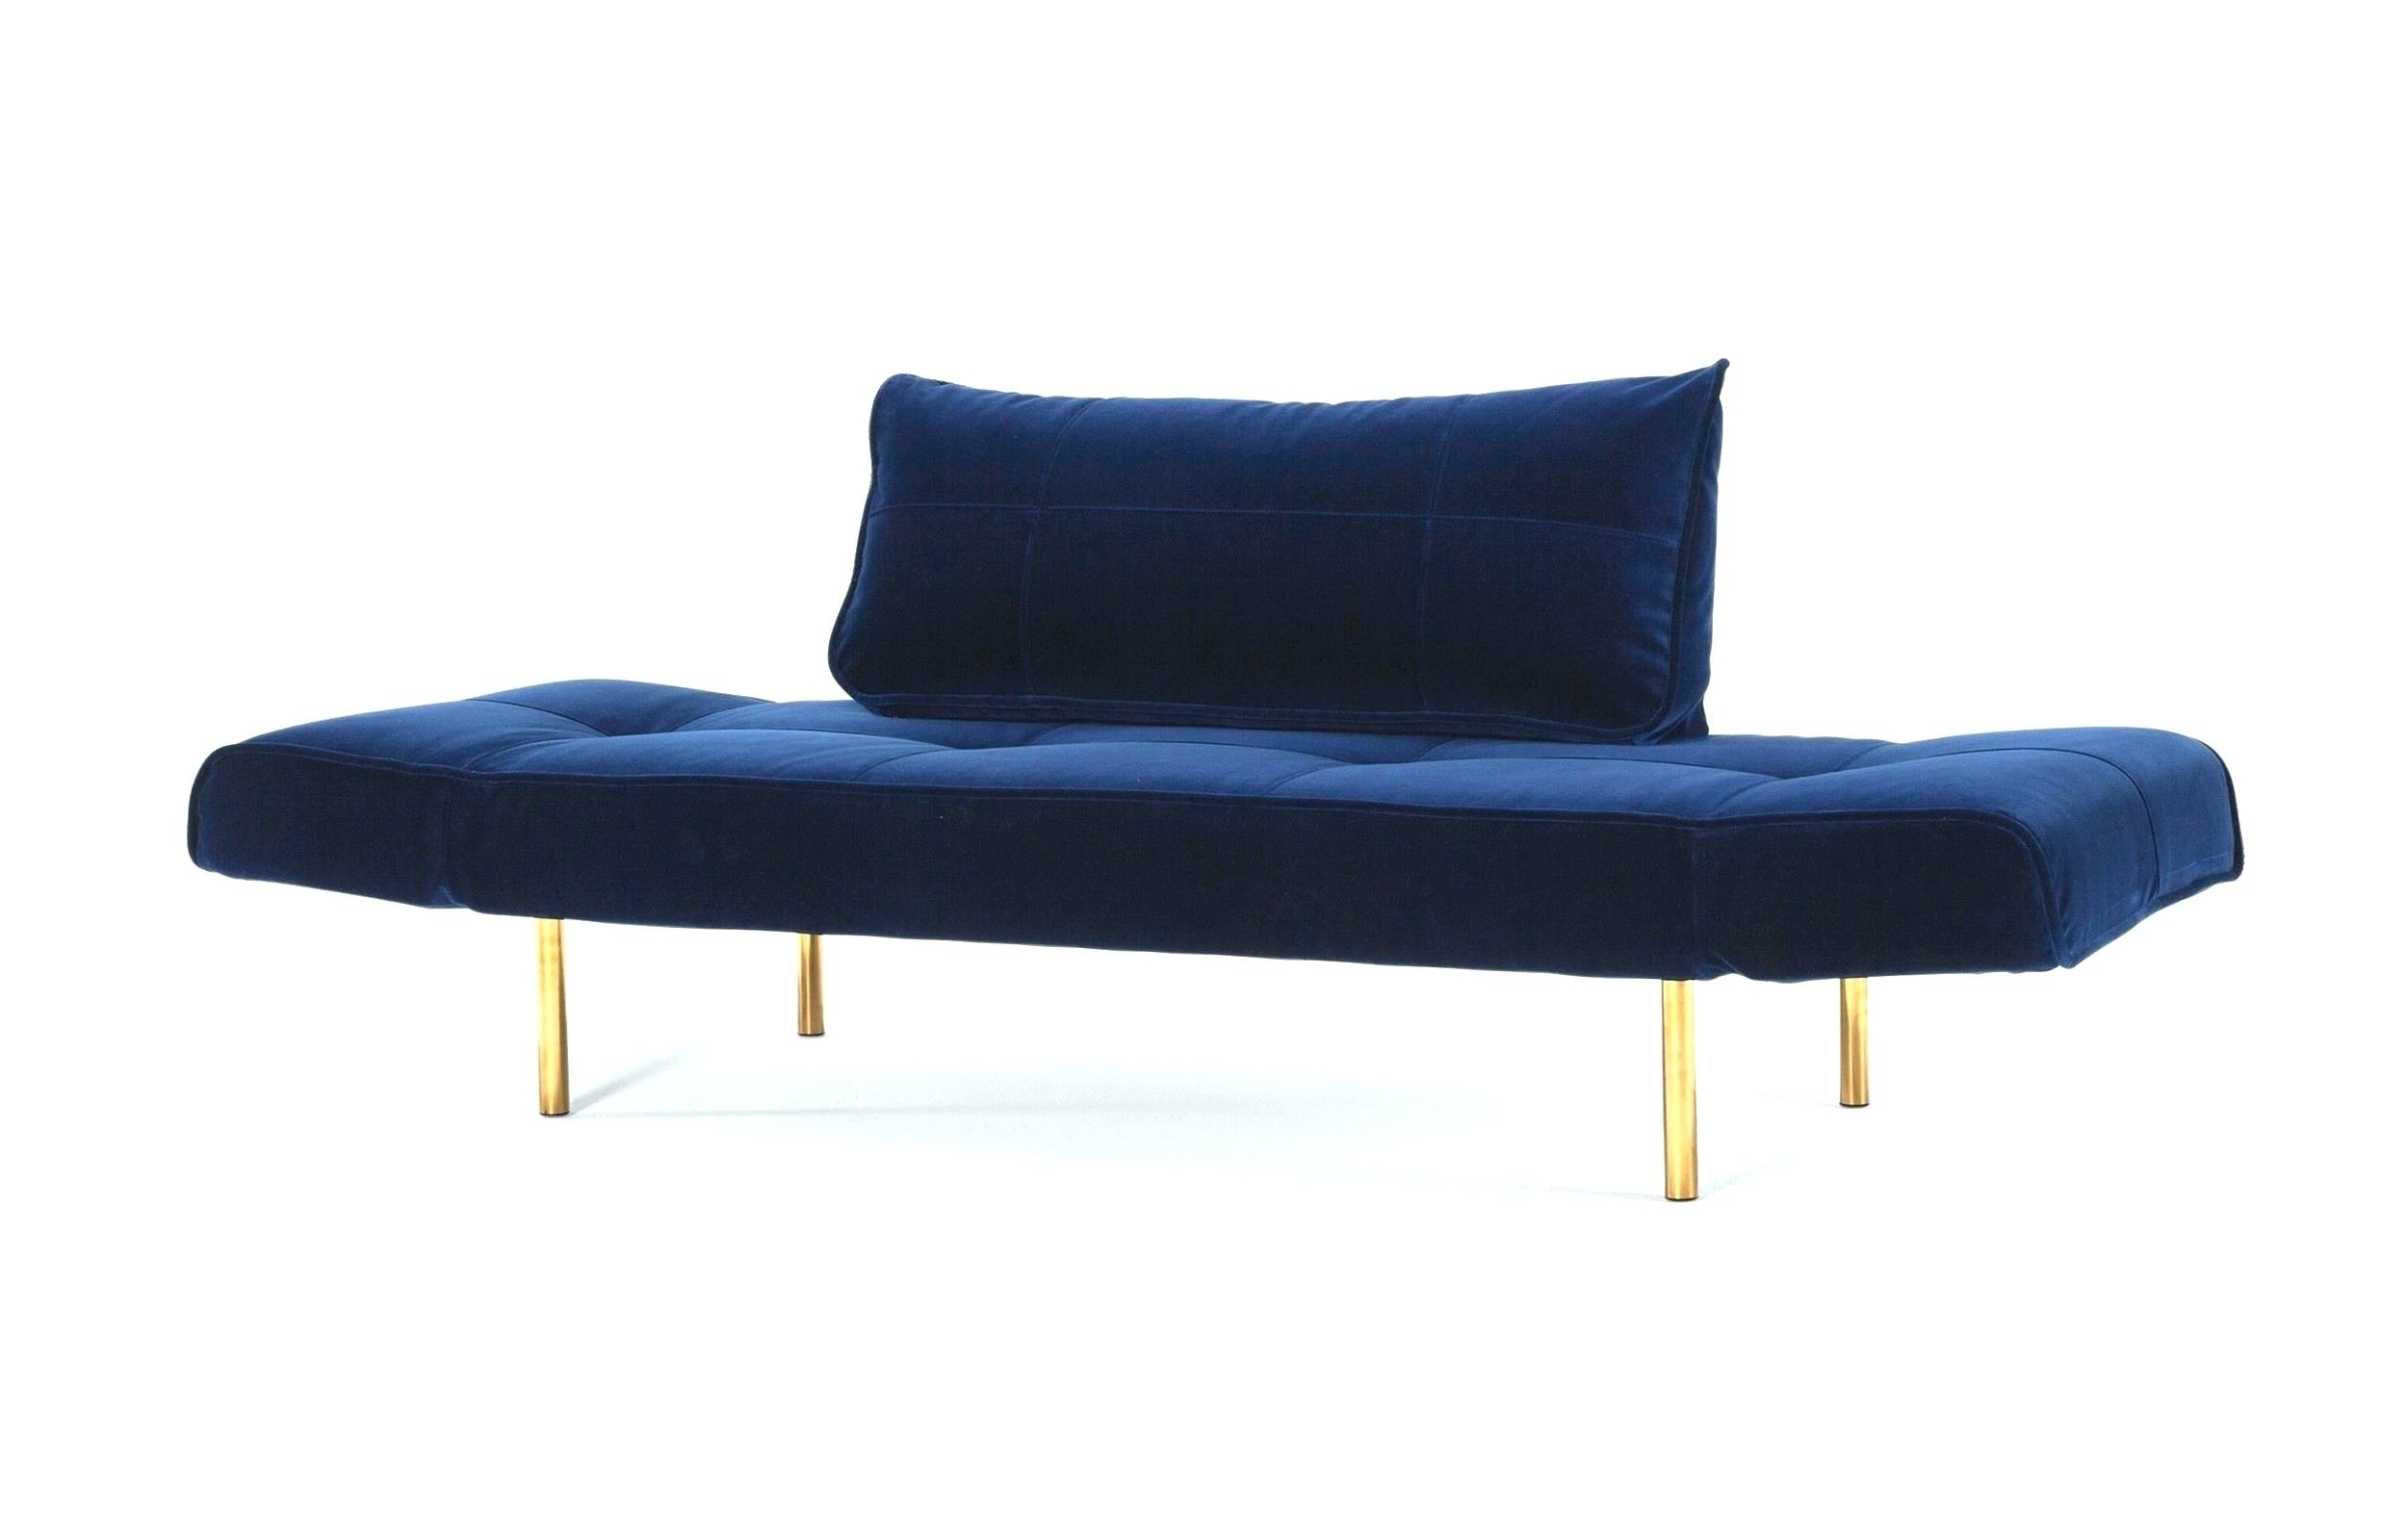 Daybed Chaise Driade Tokyo Pop Daybed Chaise Longue Minotti Regarding Latest Chaise Lounge Daybeds (View 15 of 15)